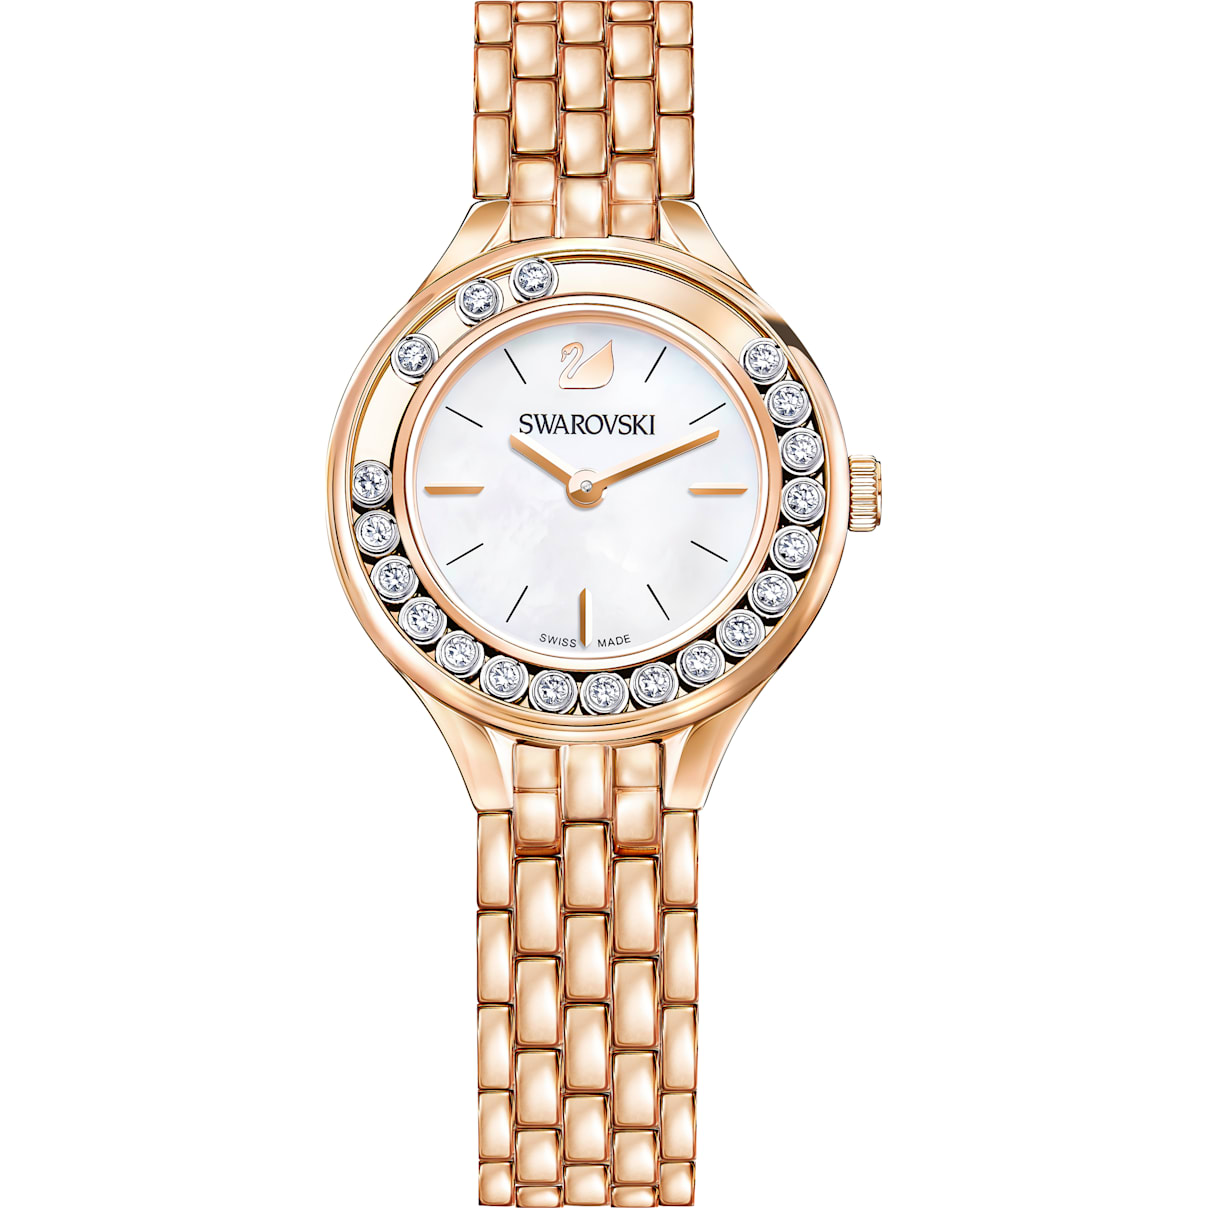 Swarovski Lovely Crystals Watch, Metal bracelet, Rose-gold tone PVD